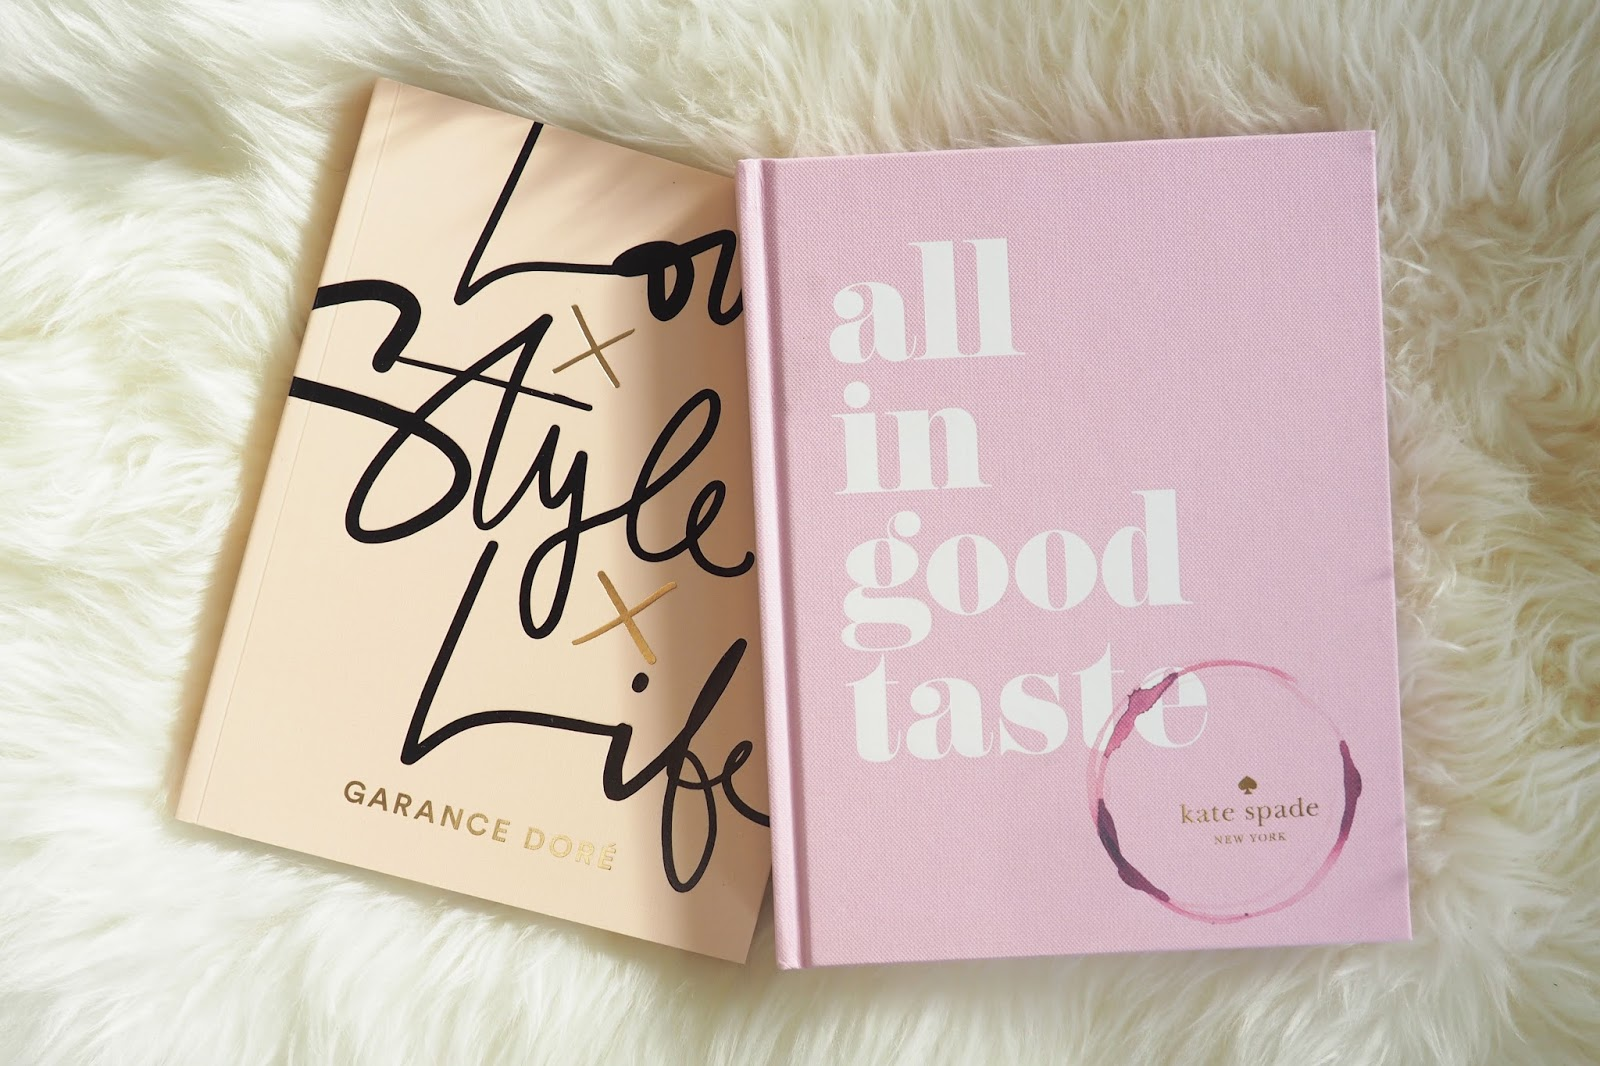 love life and style book review, blogger books, Garance Dore, All in good taste kate spade